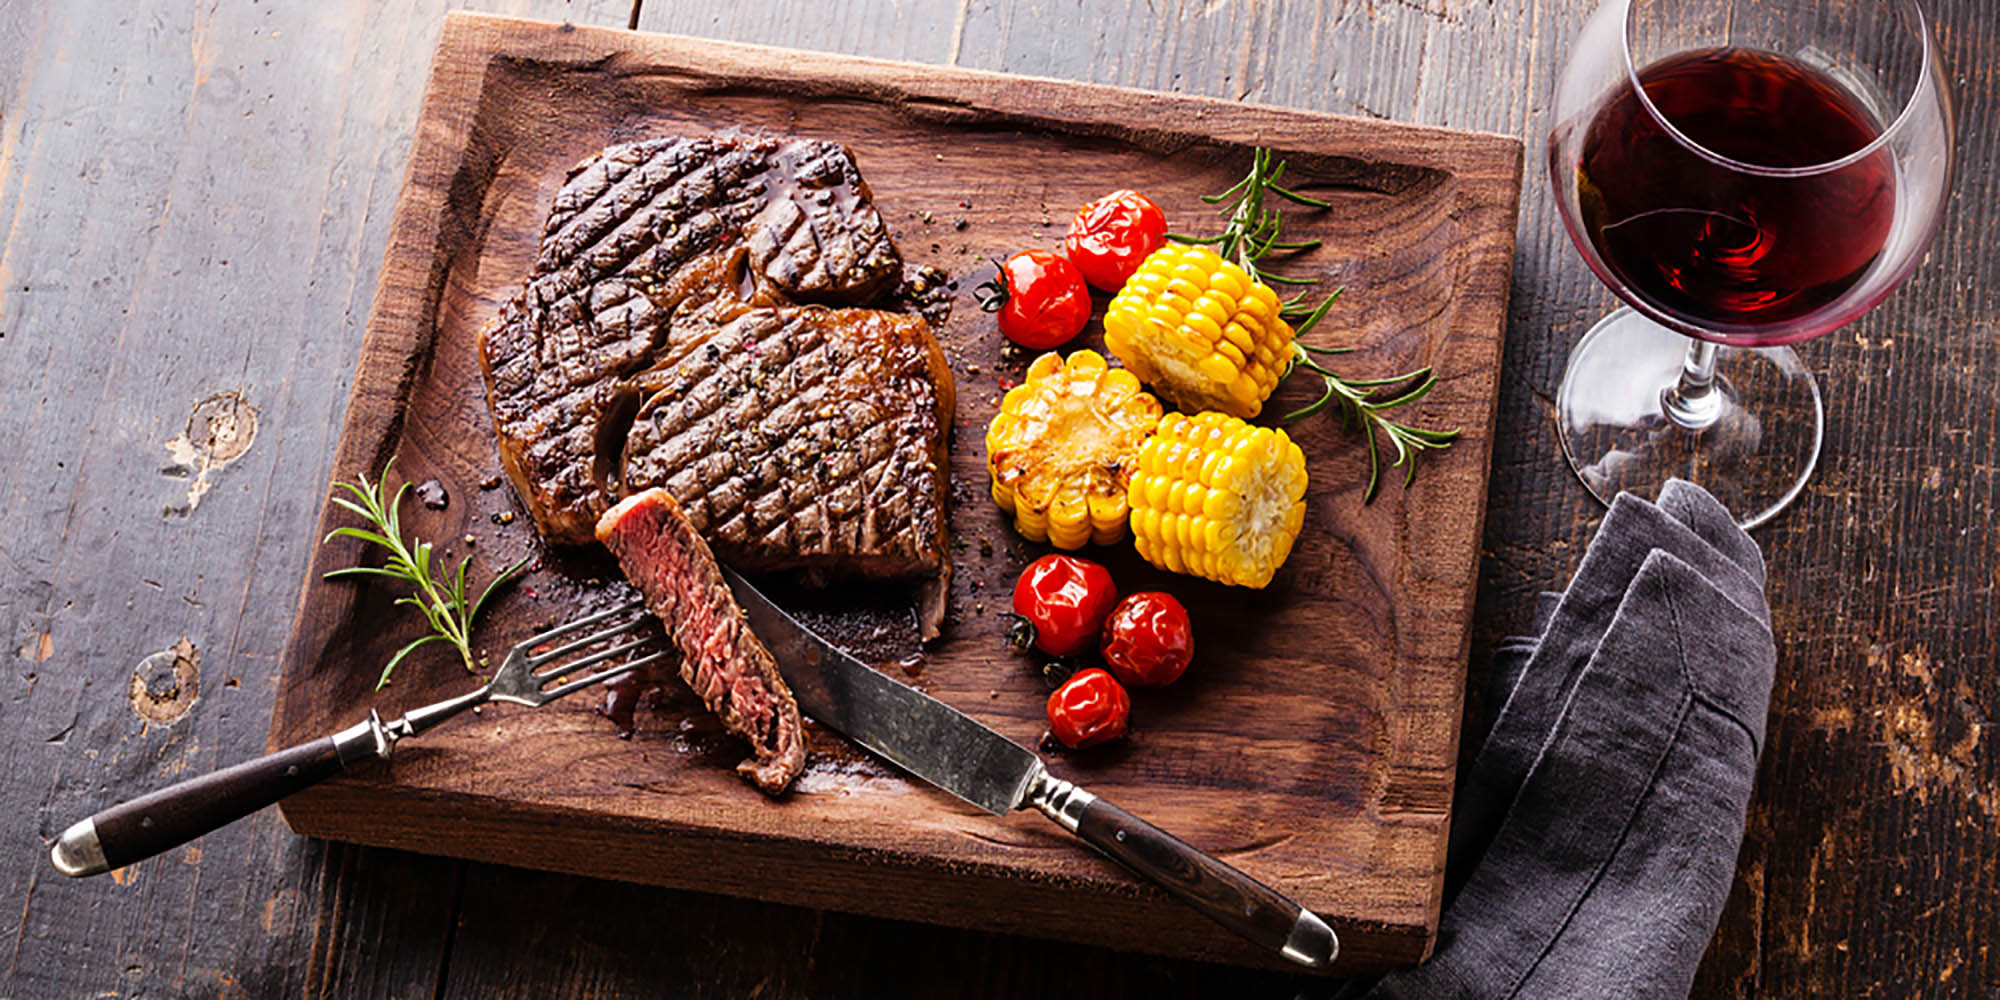 Did You Know Steak and Red Wine Are Healthier Together?